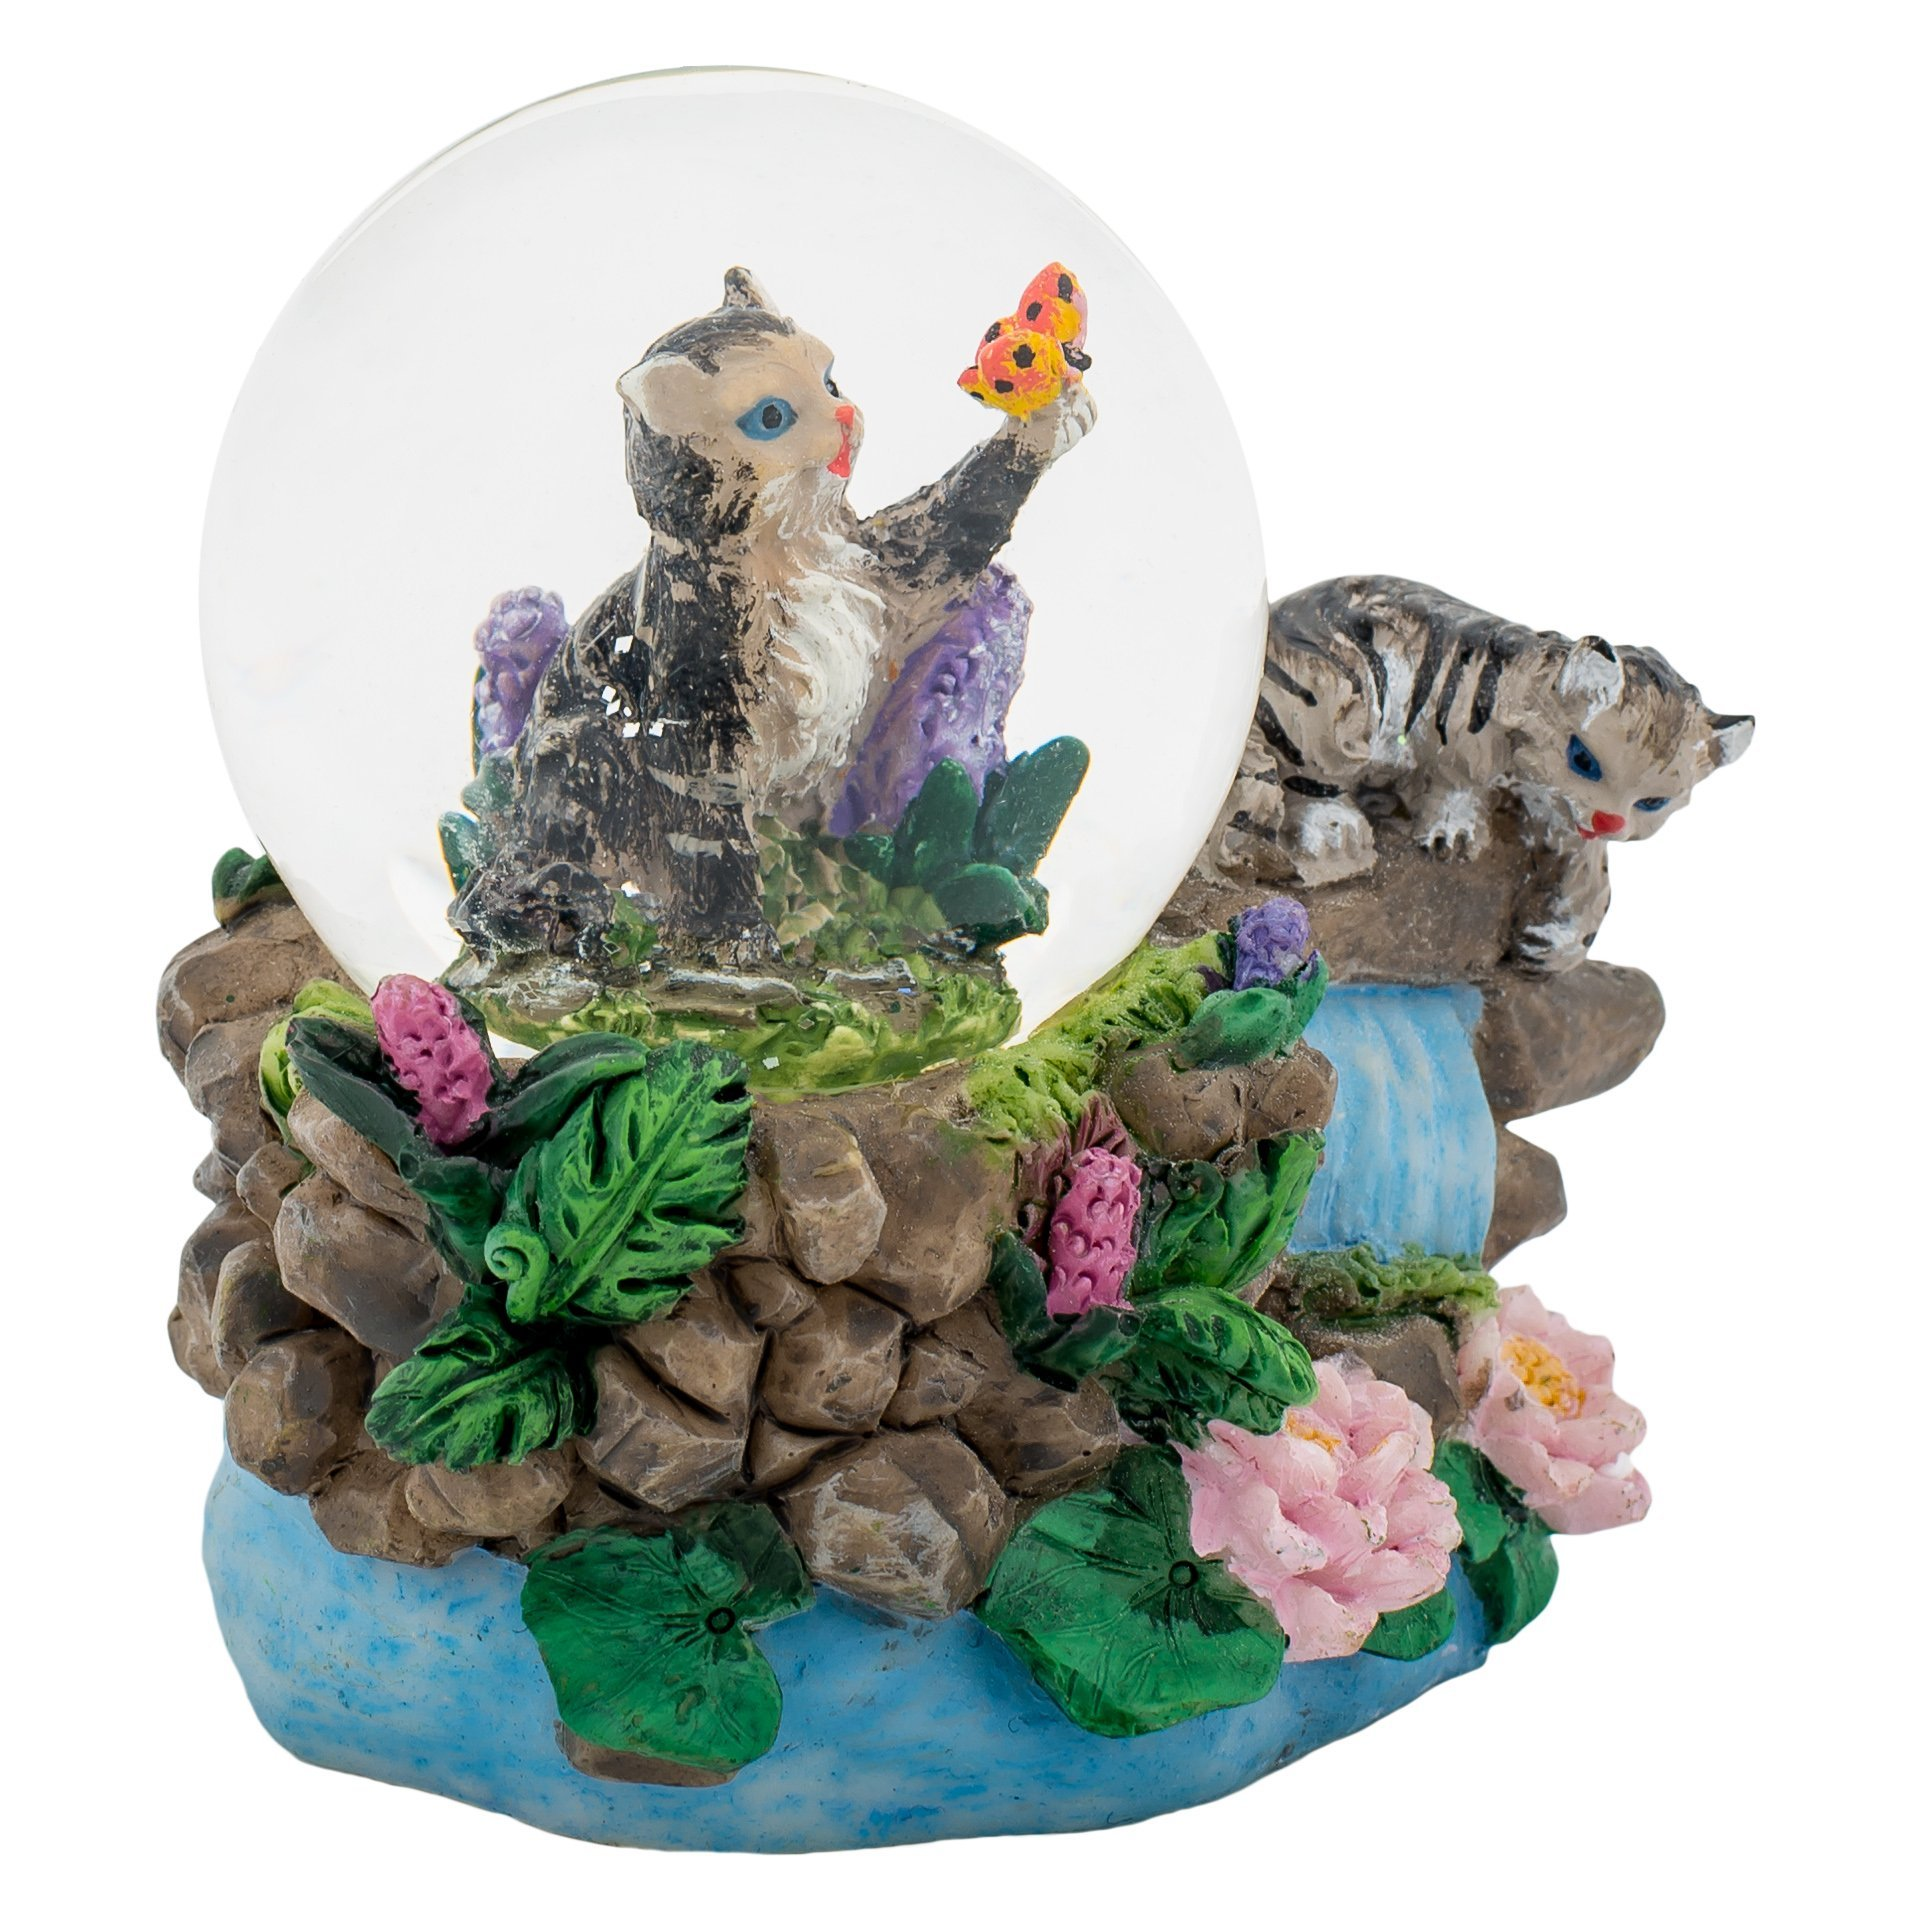 Tabby Kittens 3 x 3 Miniature Resin Stone 45MM Water Globe Table Top Figurine by Cadona International, Inc